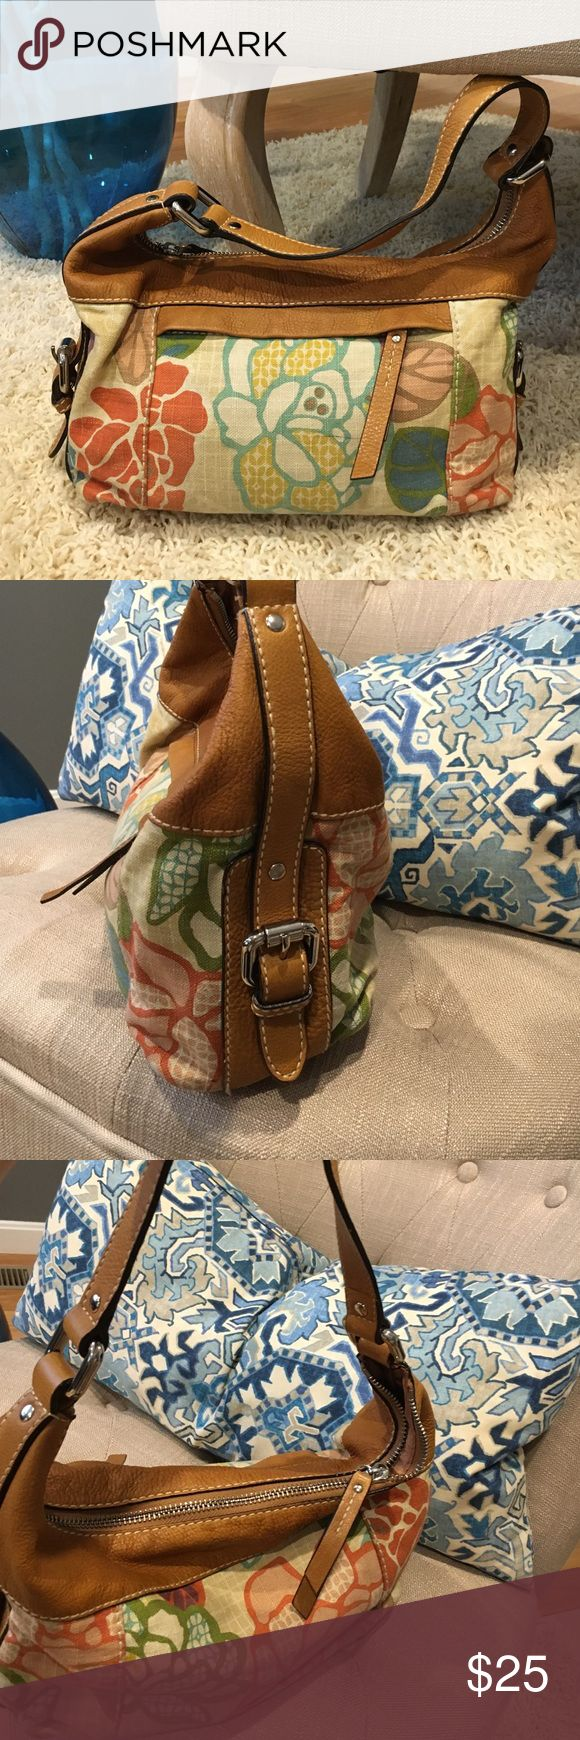 Fossil floral bag A little dirty  but it can be washed because is cloth with leather trim Fossil Bags Hobos